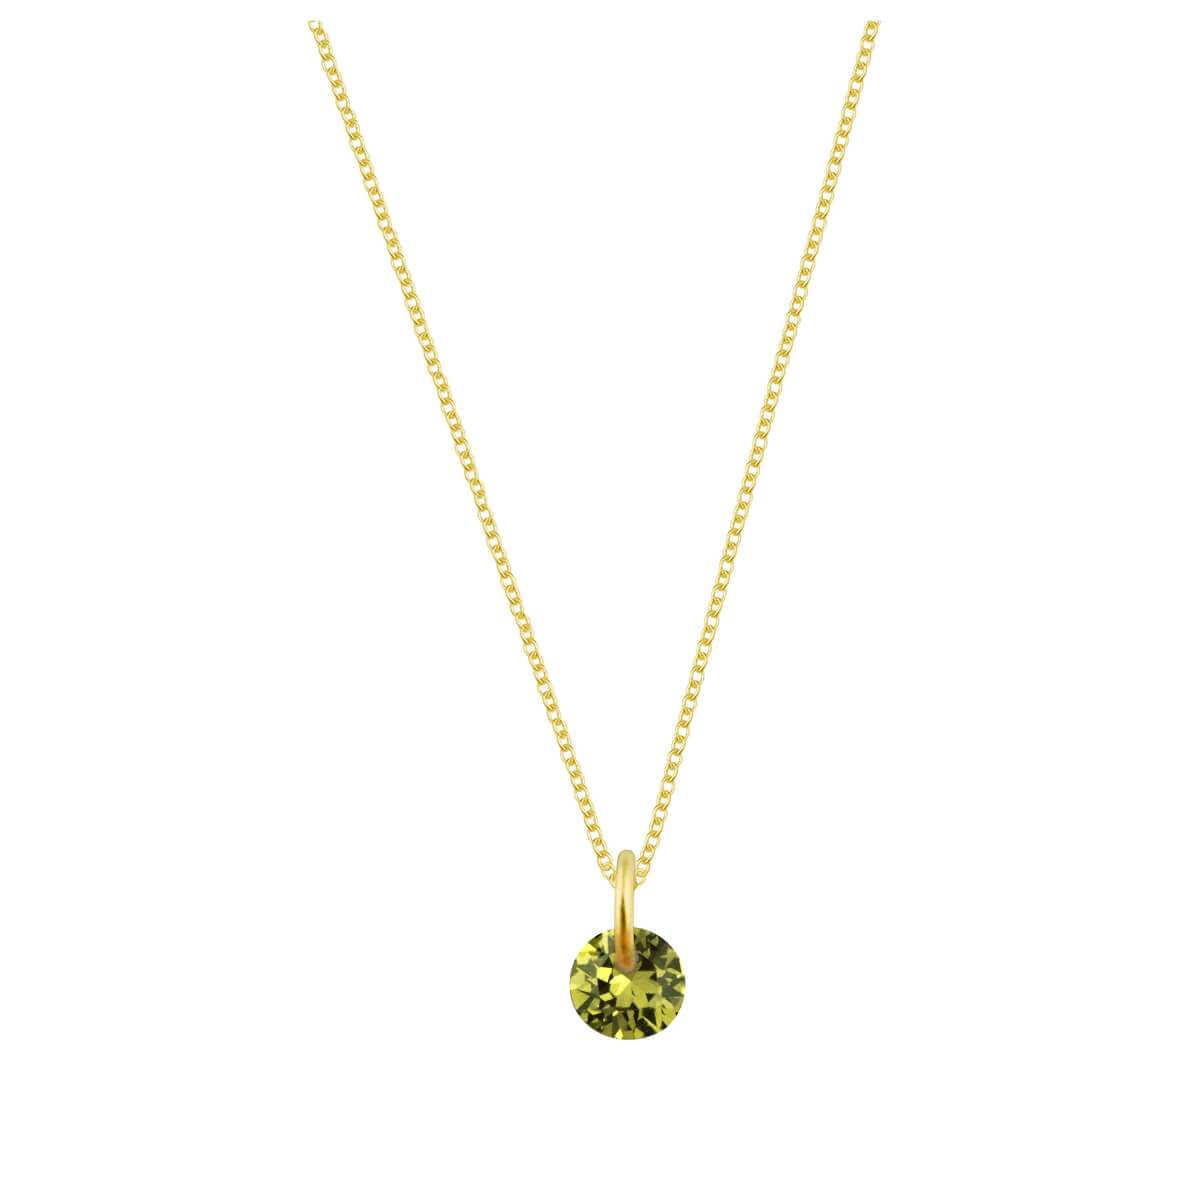 Gold Plated Sterling Silver & 4mm Peridot CZ Necklace - 16 - 22 Inches